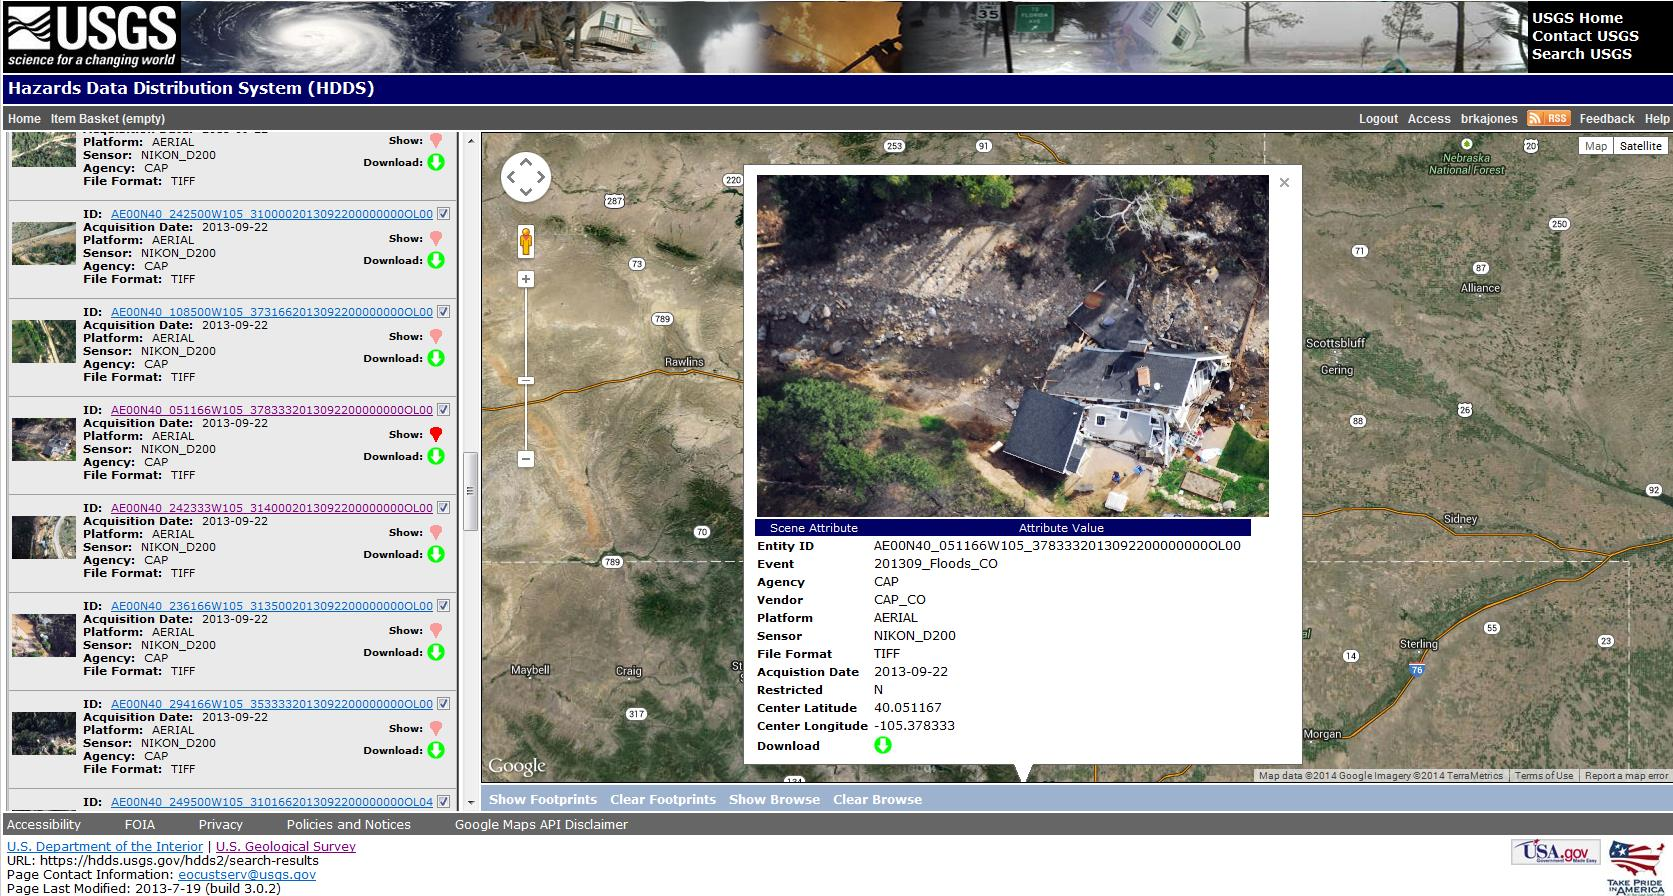 Civil Air Patrol browse image showing damaged structure from the September 2013 Colorado floods, as displayed in the Hazard Data Distribution System.